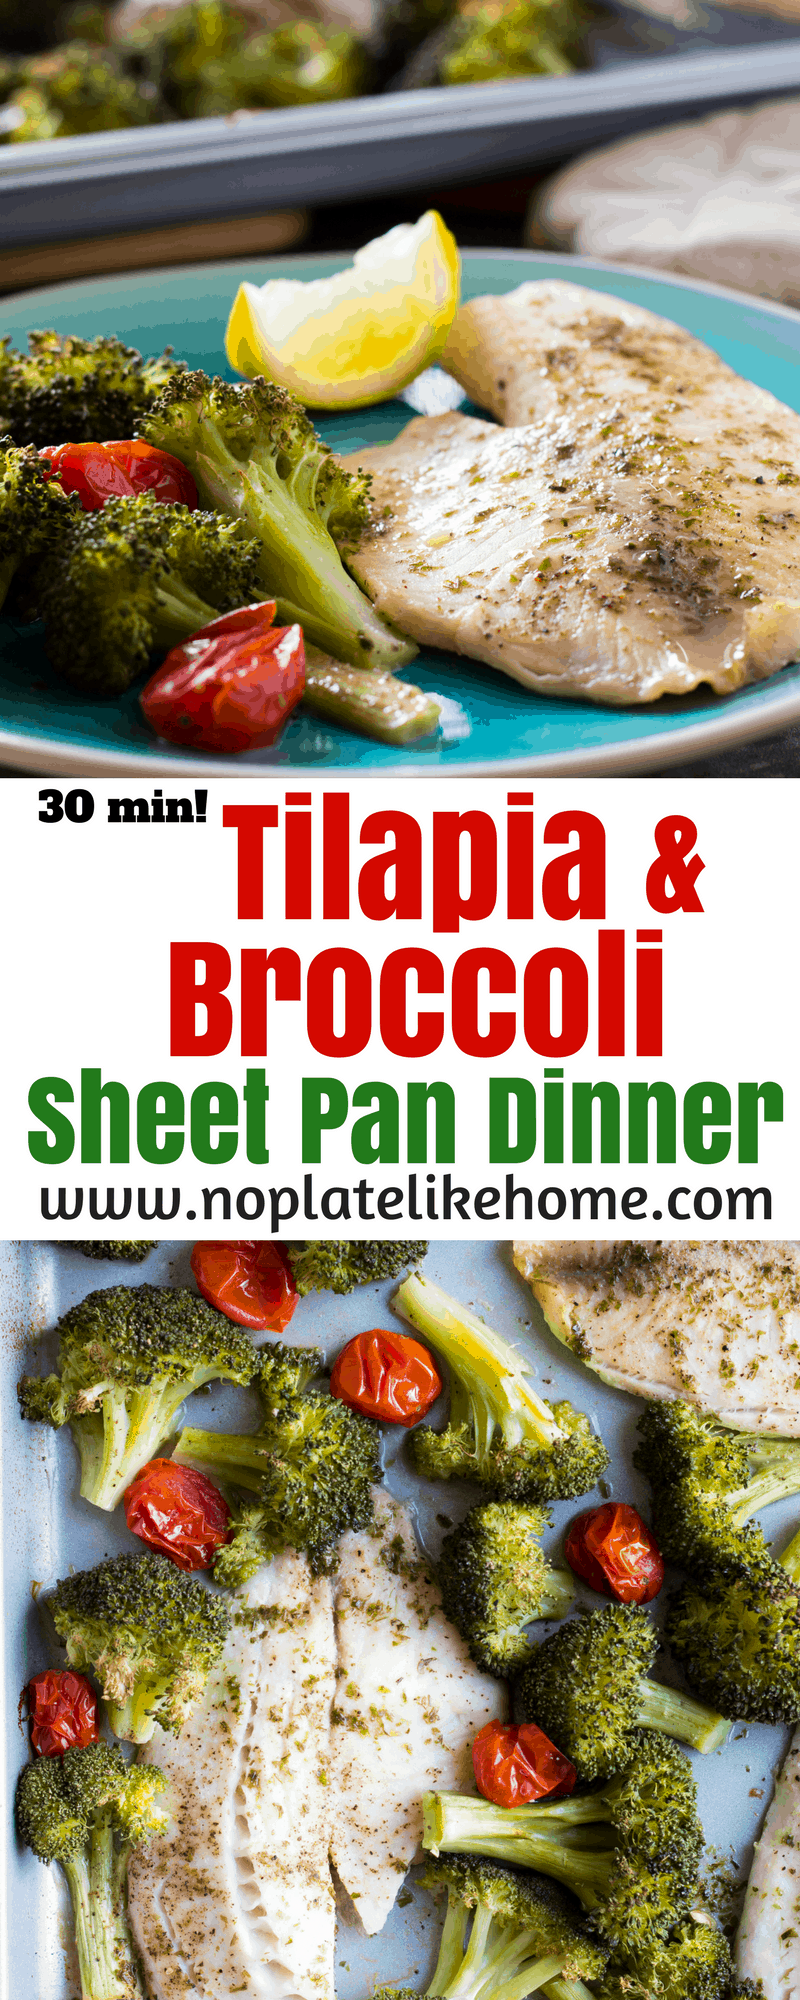 Roasted Tilapia & Broccoli